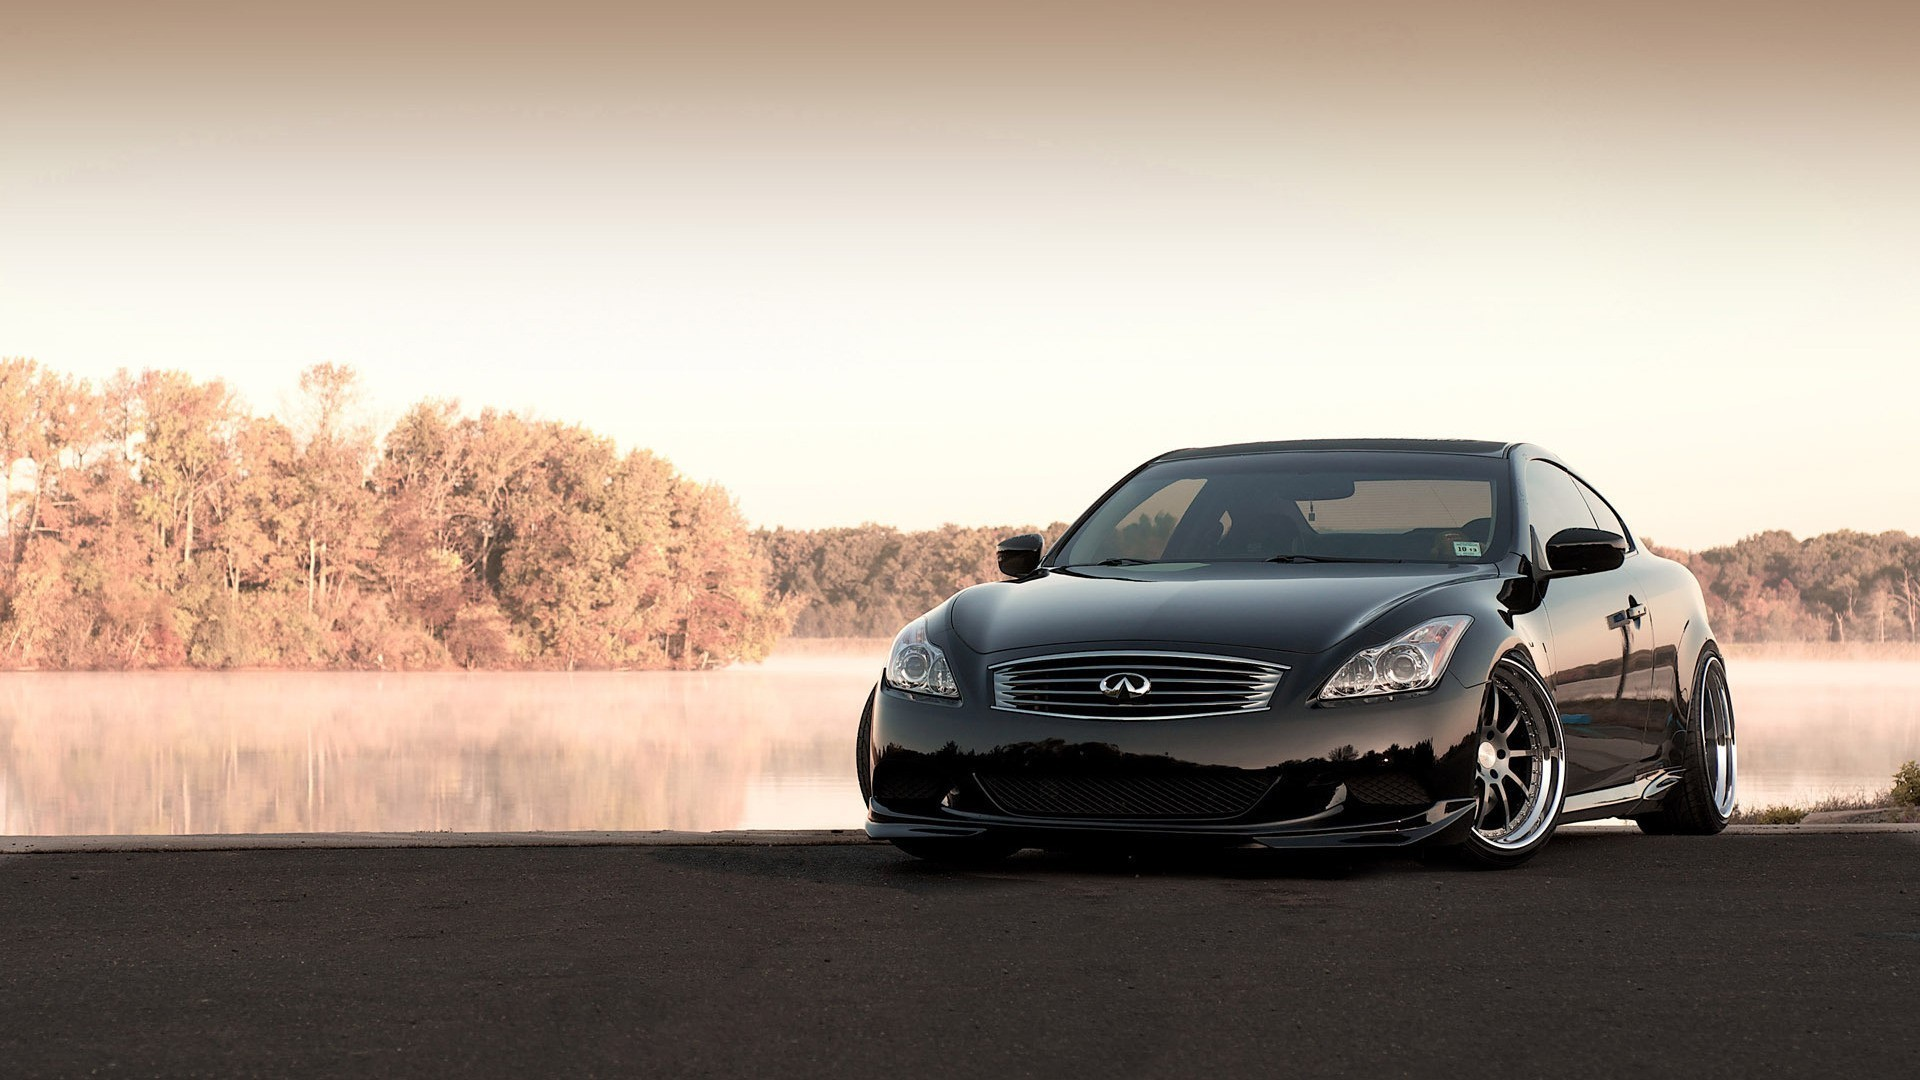 Infiniti Jdm Japanese Domestic Market Automobiles Black Blue Wallpaper